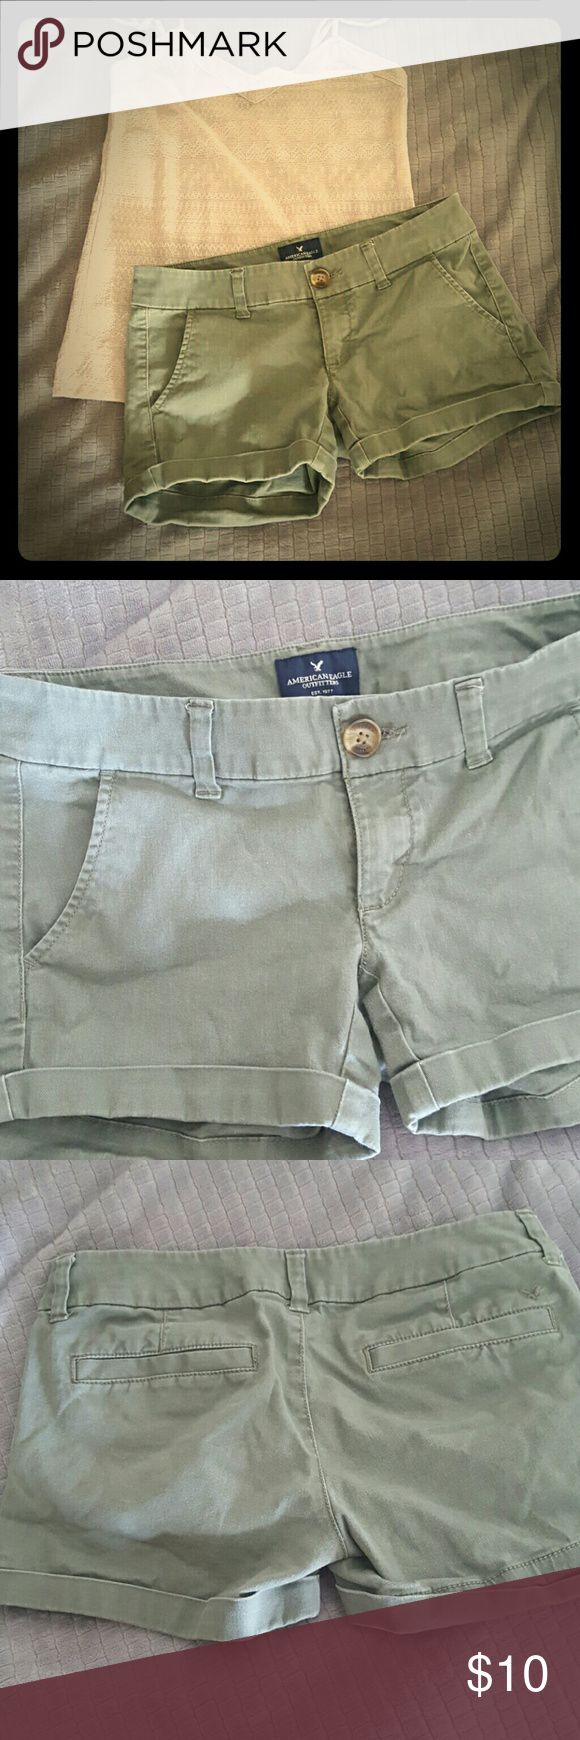 American Eagle Shorts Cute and Classic army green midi stretch shorts from American Eagle.  Faded from the wash but still has a lot of life left in them! American Eagle Outfitters Shorts